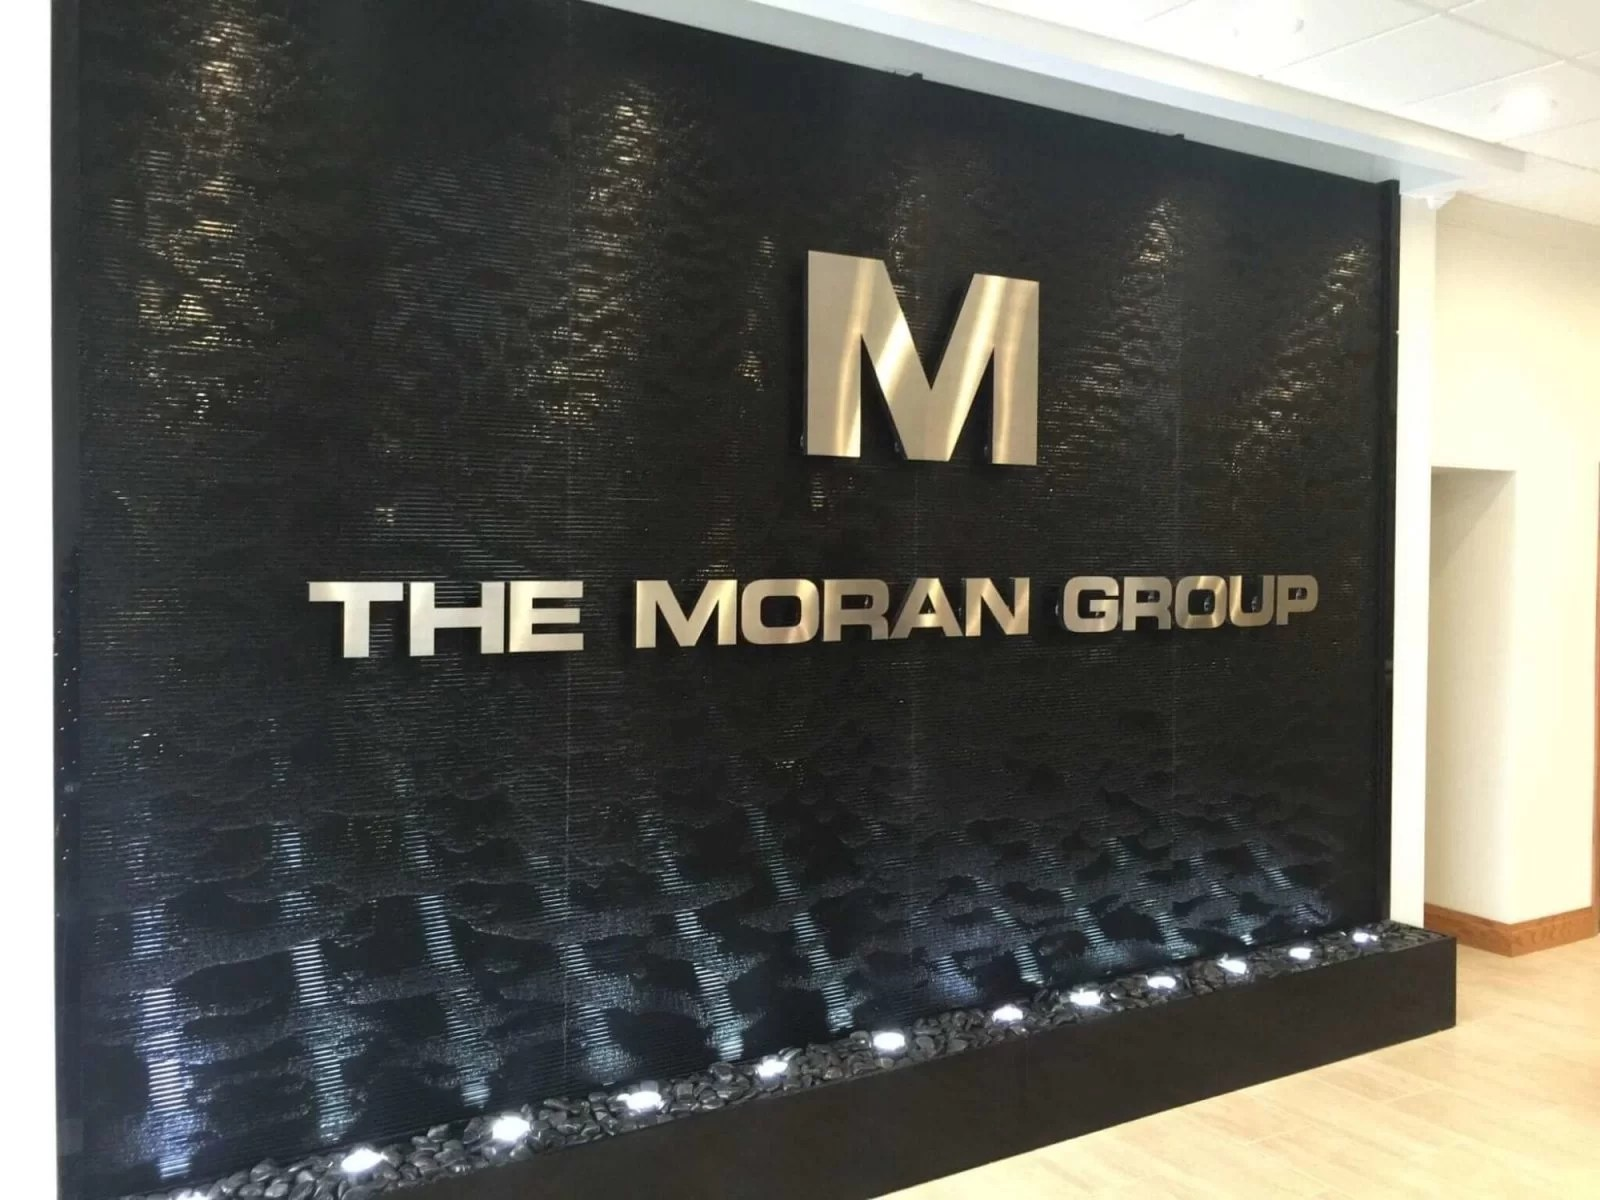 Black Scored Acrylic Water Wall Aquafall with Logo at FE Moran Offices in Northbrook Illinois 2